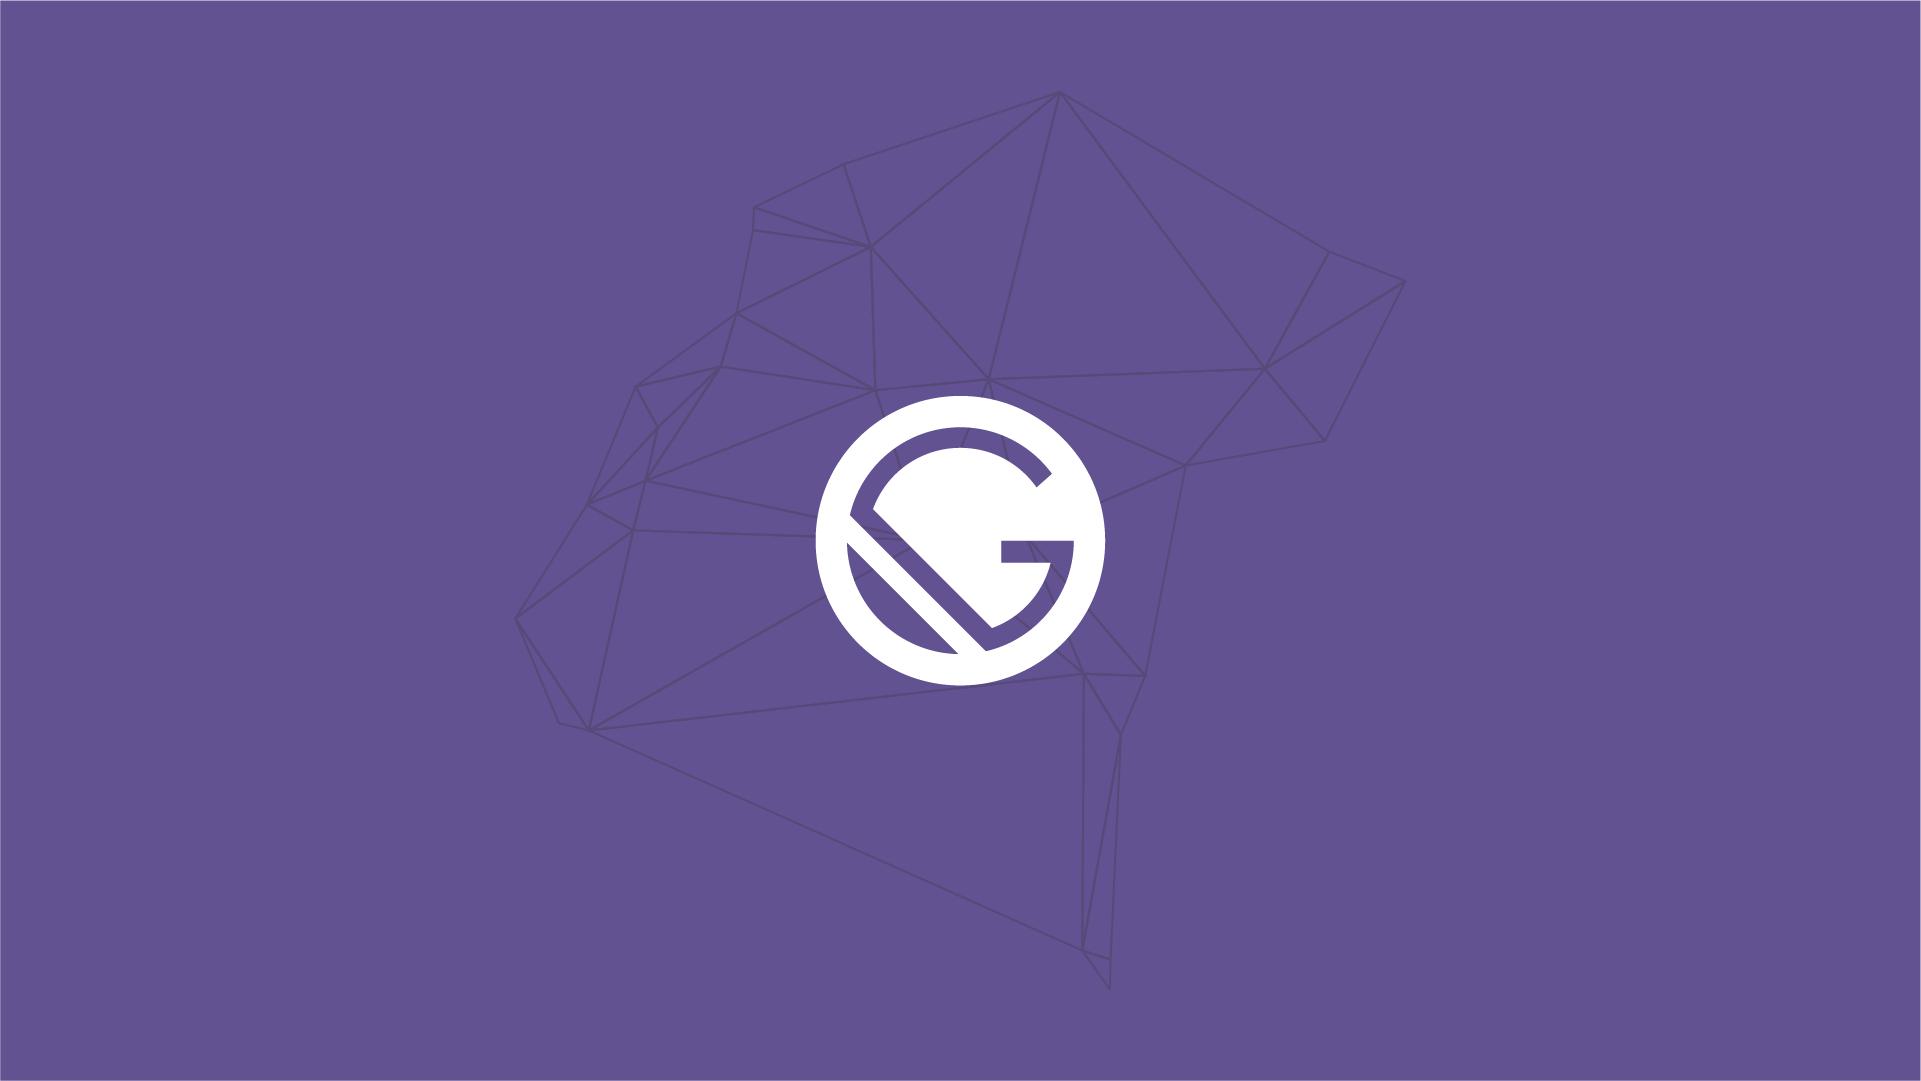 Using GatsbyJS & Netlify to create and deploy a website